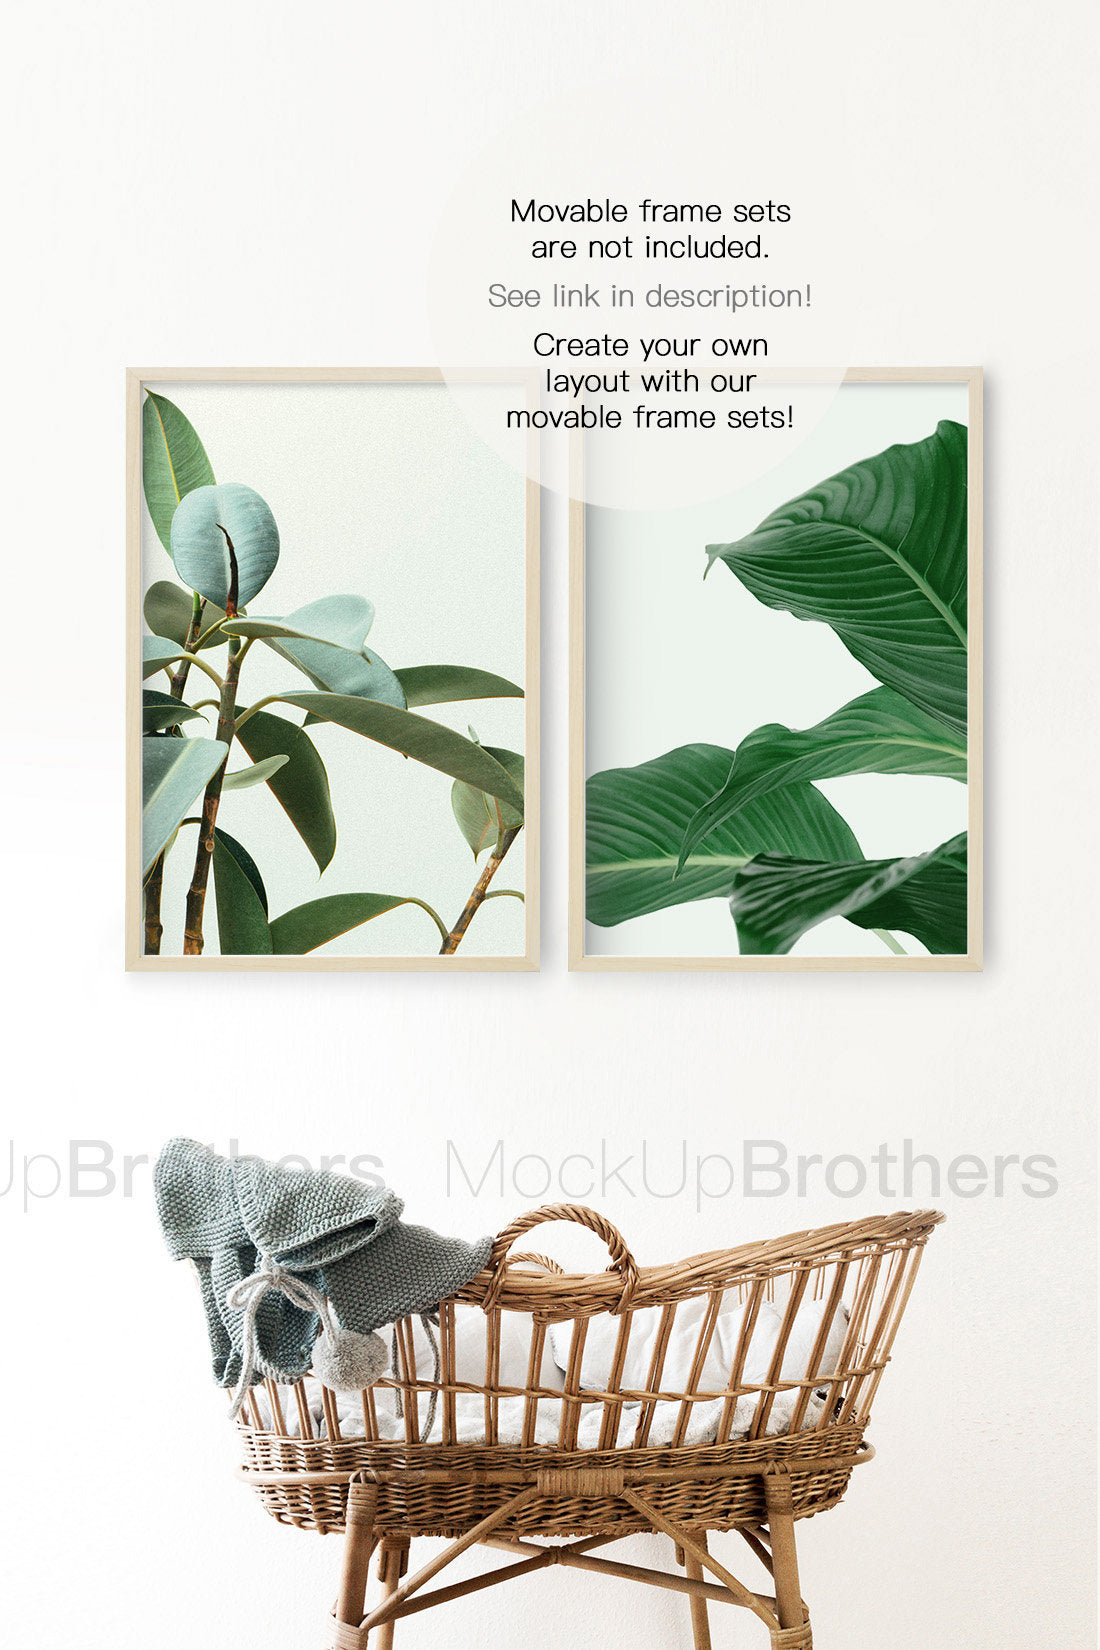 Mockup frame in kids room by Mockup brothers